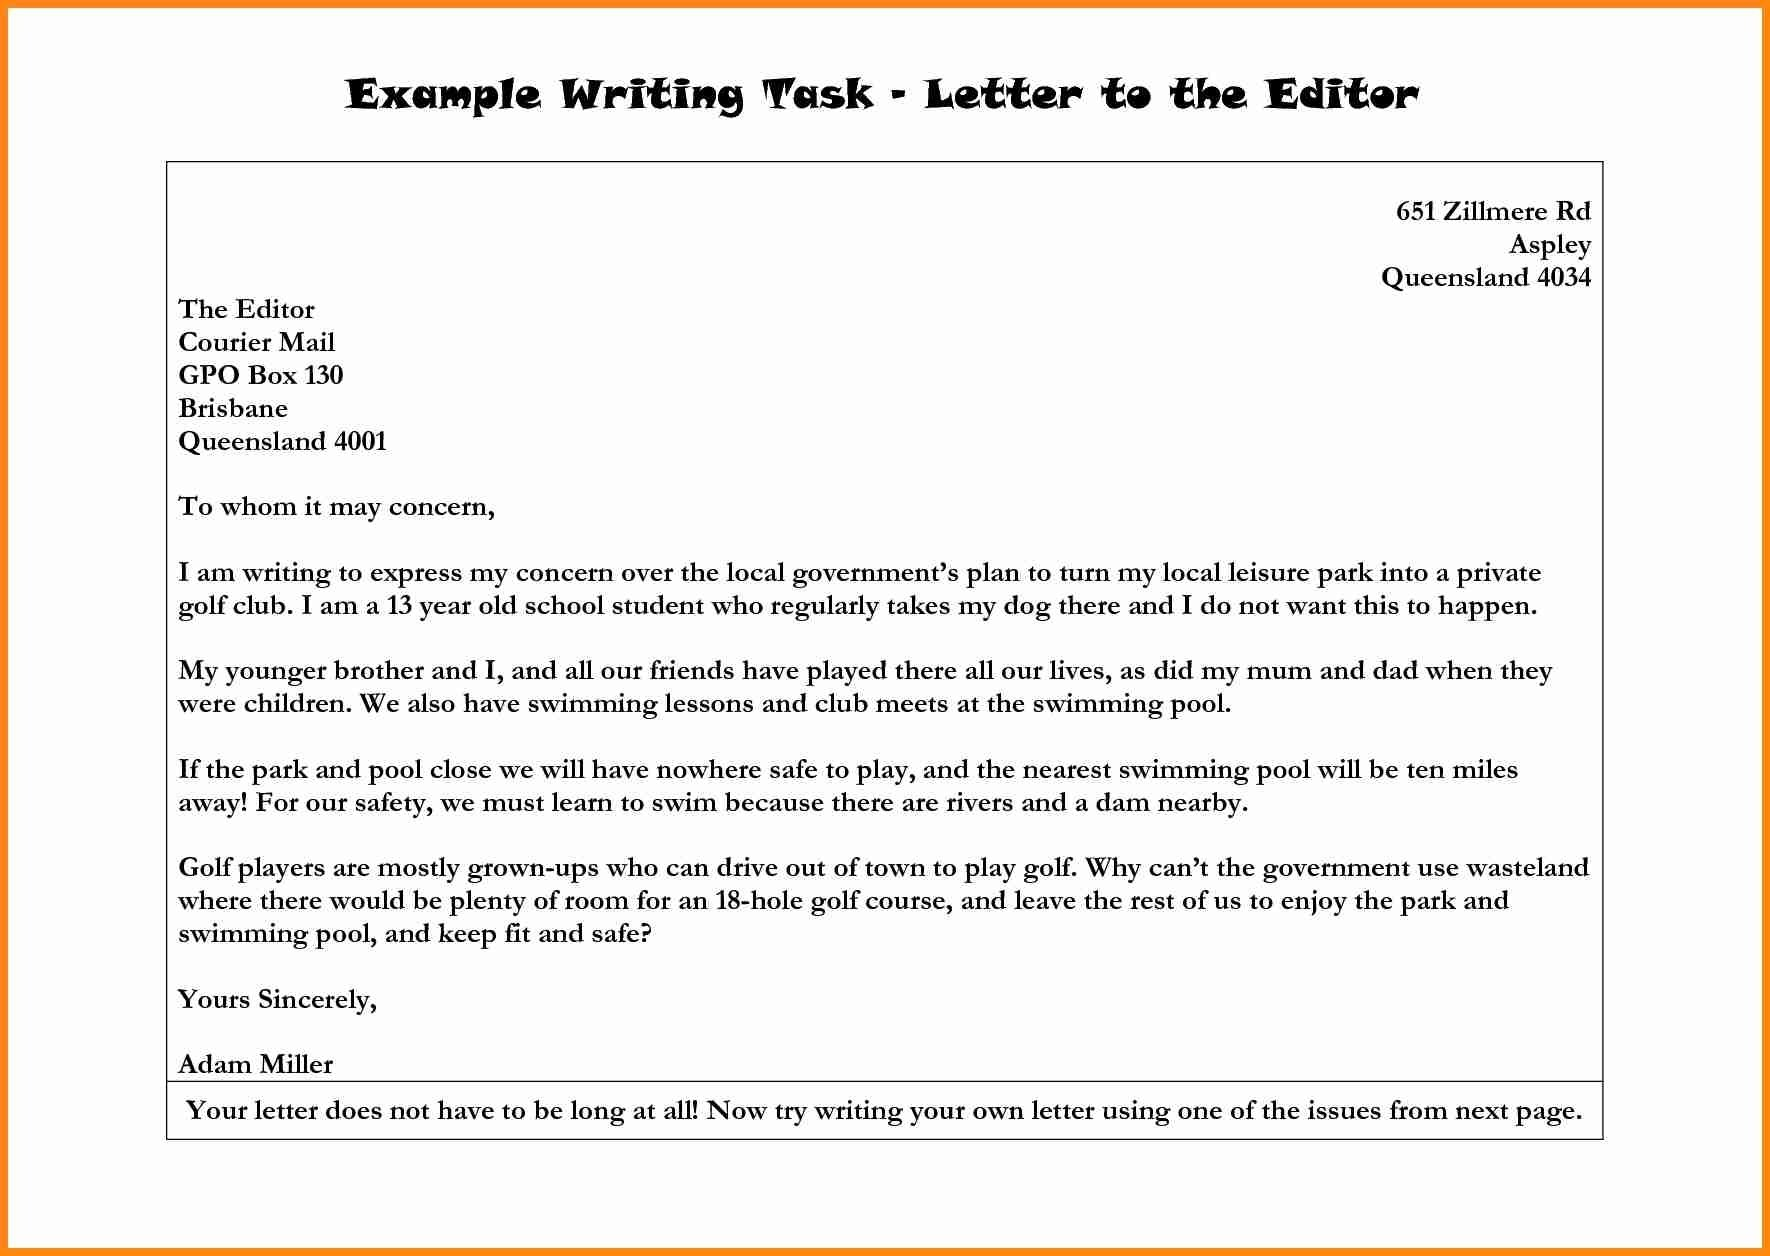 10 Elegant Letter To The Editor Ideas ideas of 10 examples of letters to the editor of a newspaper with 2020